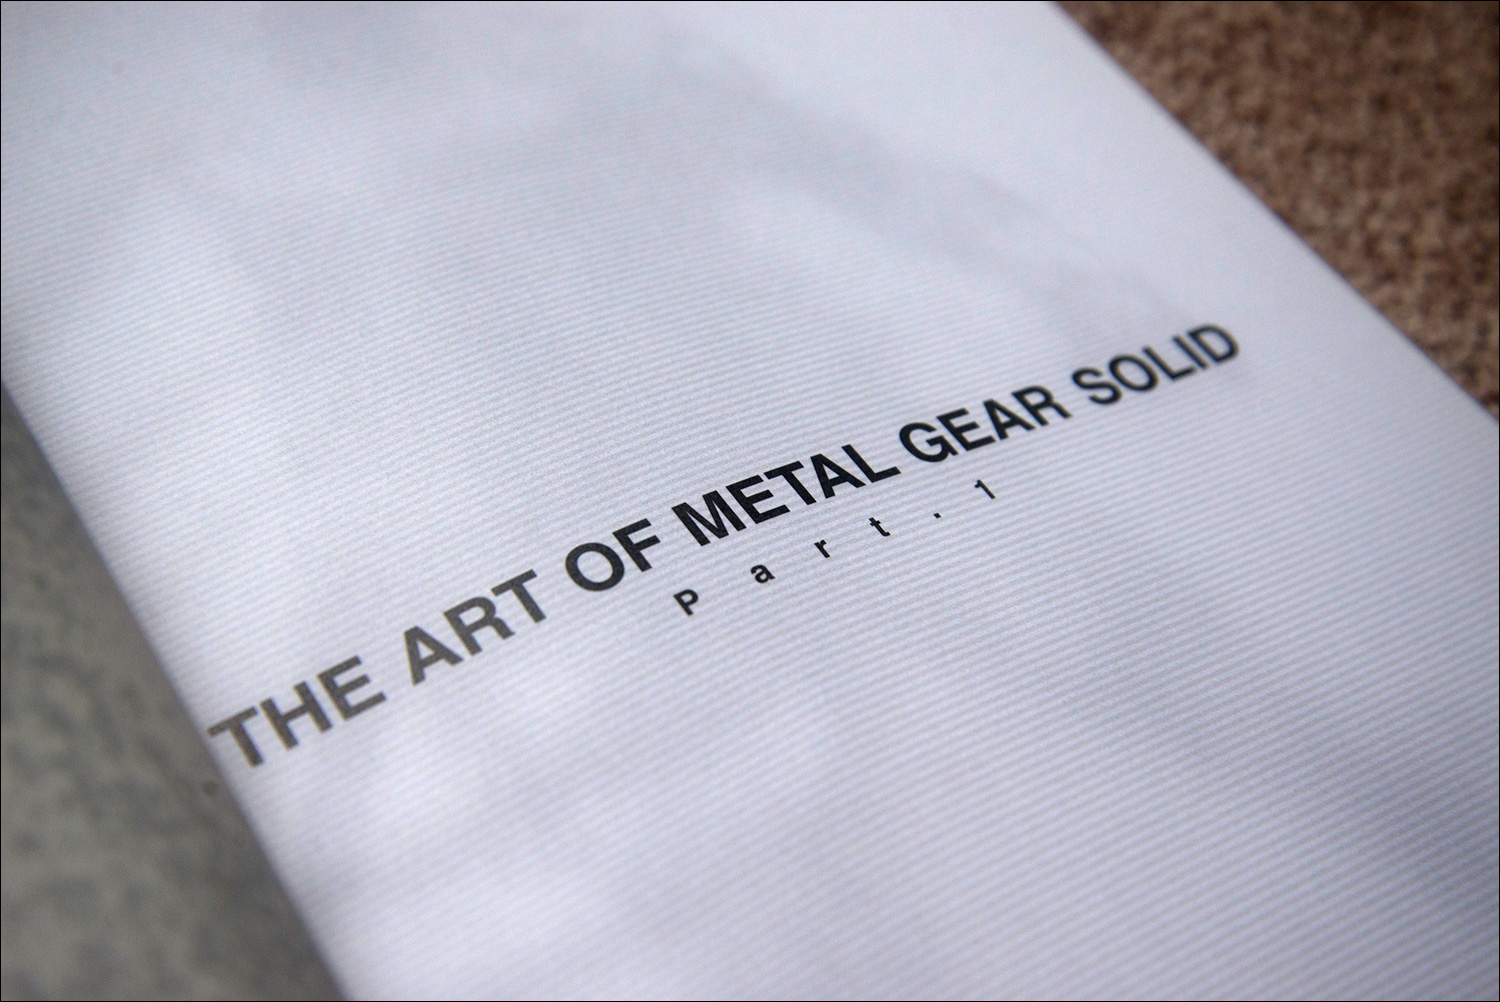 The-Art-of-Metal-Gear-Solid-Transparant-Page